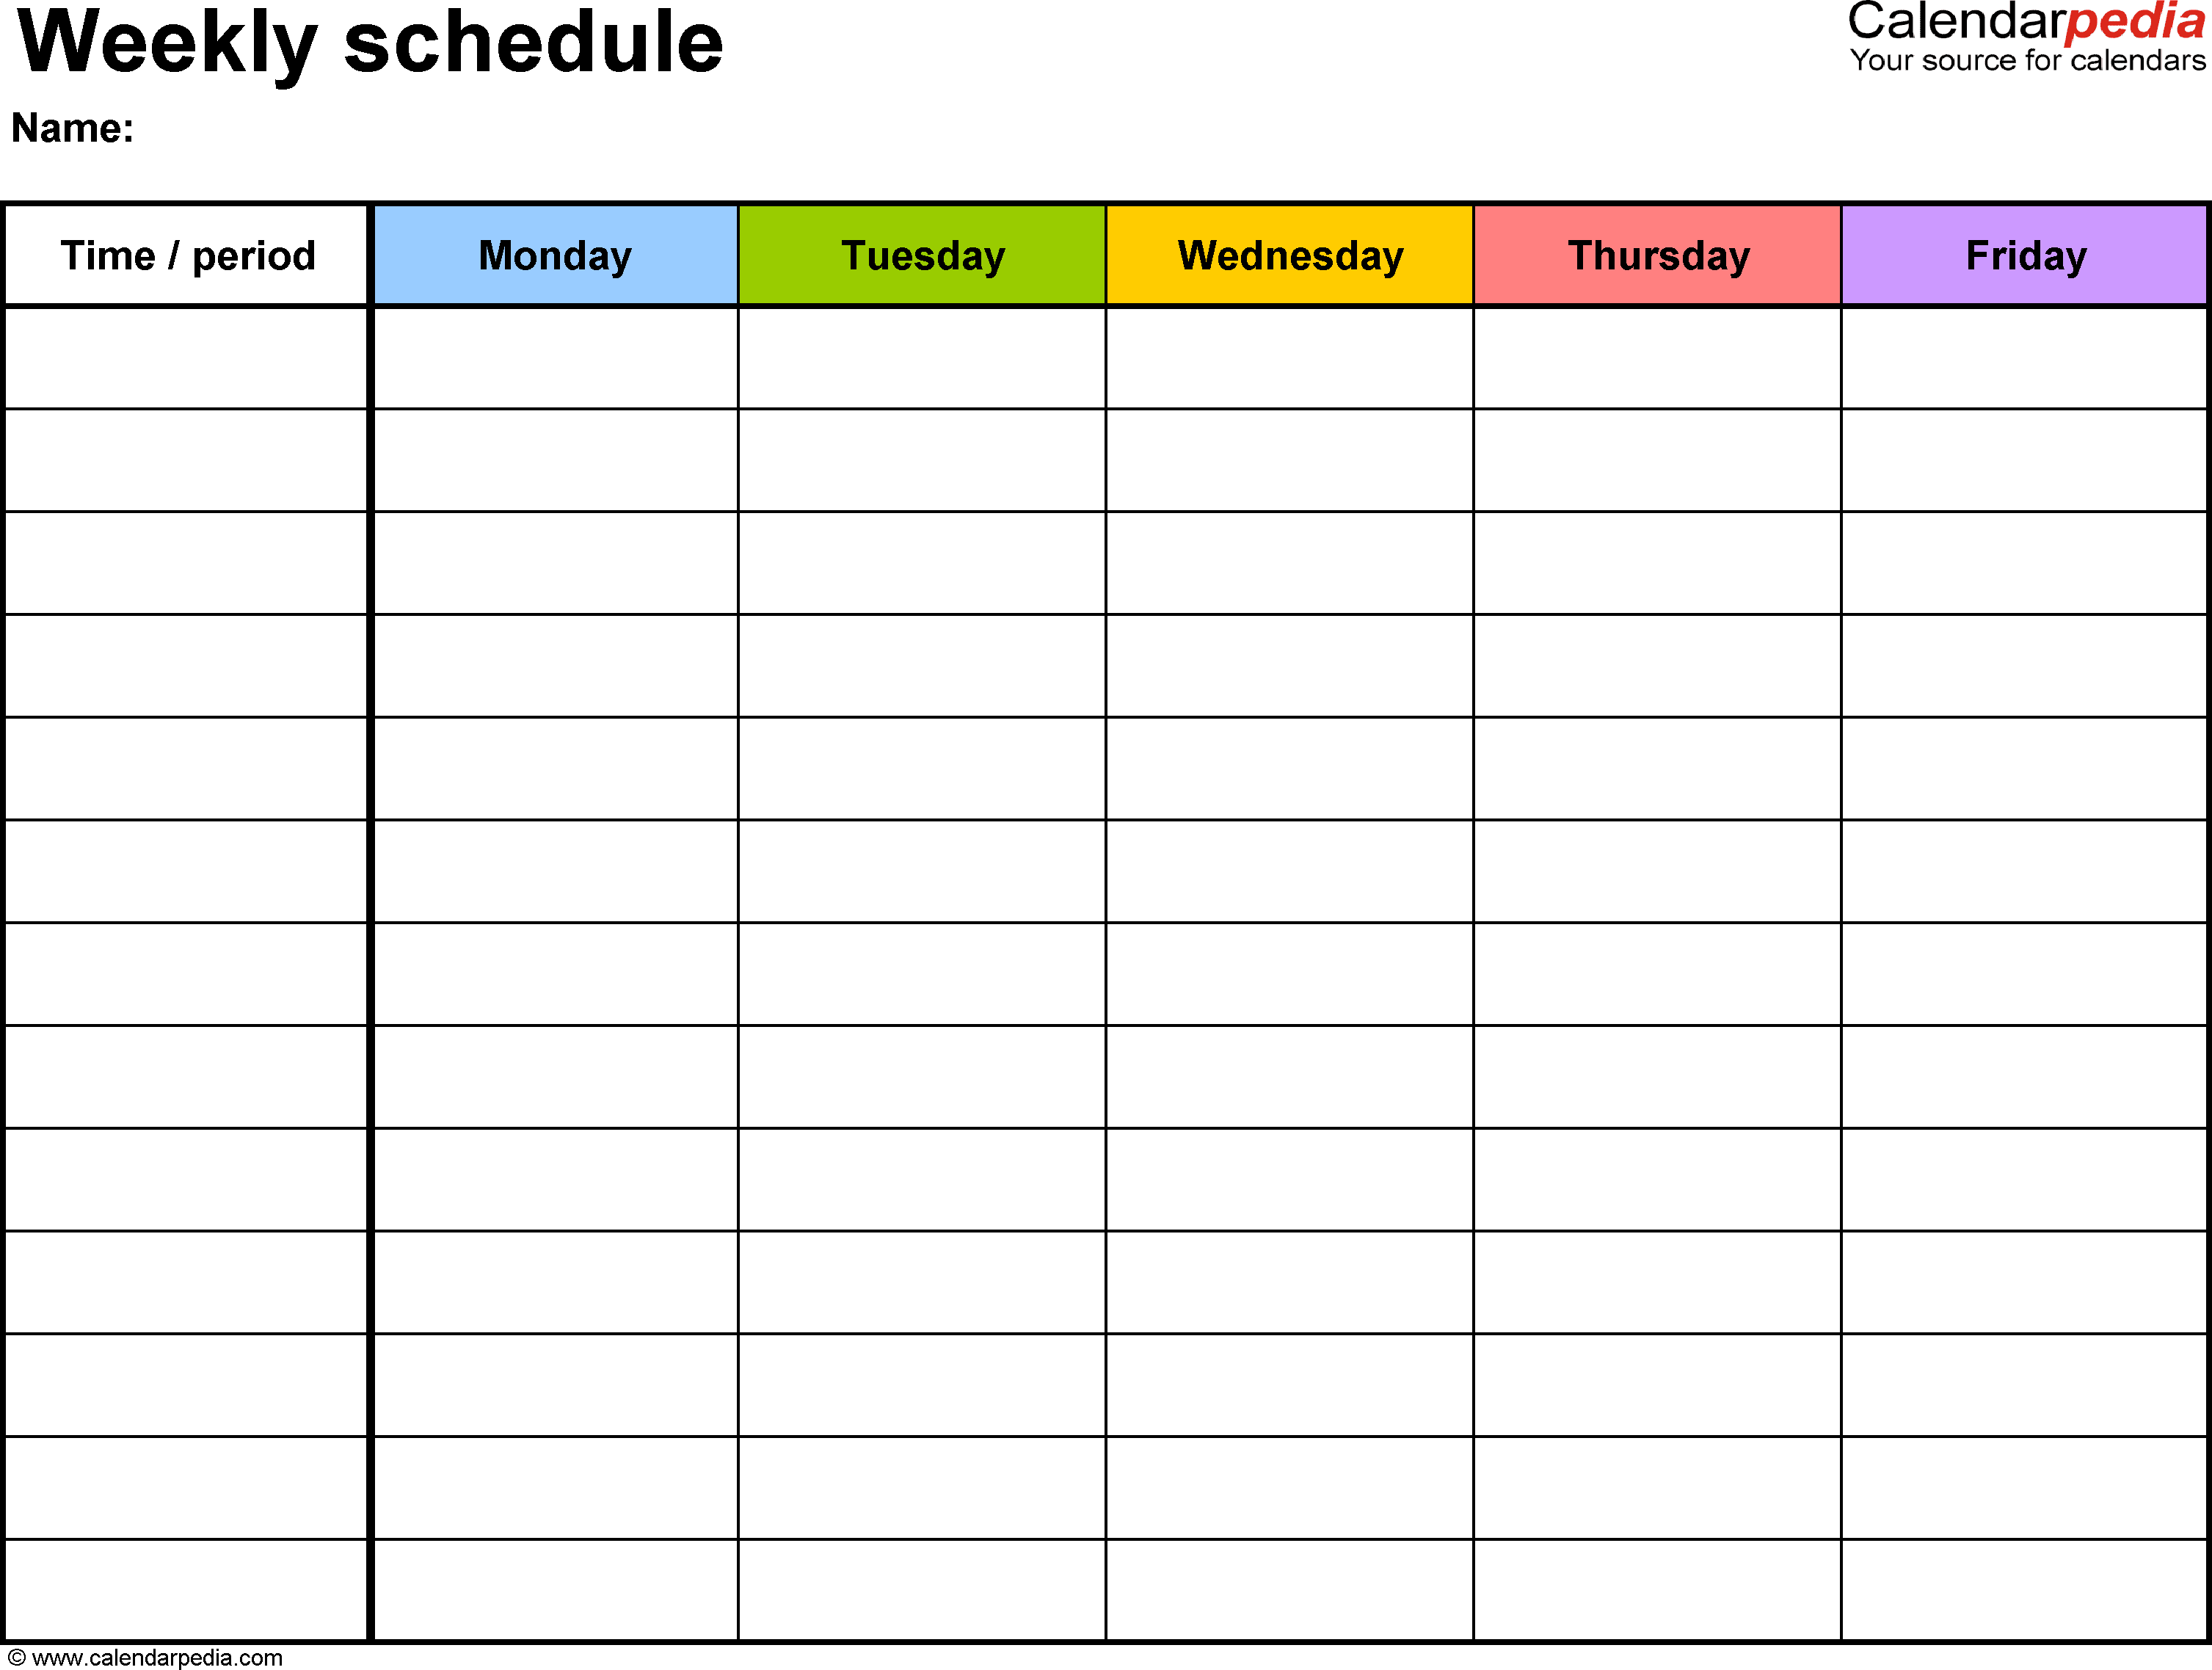 flight schedule template - weekly schedule template for word version 1 landscape 1